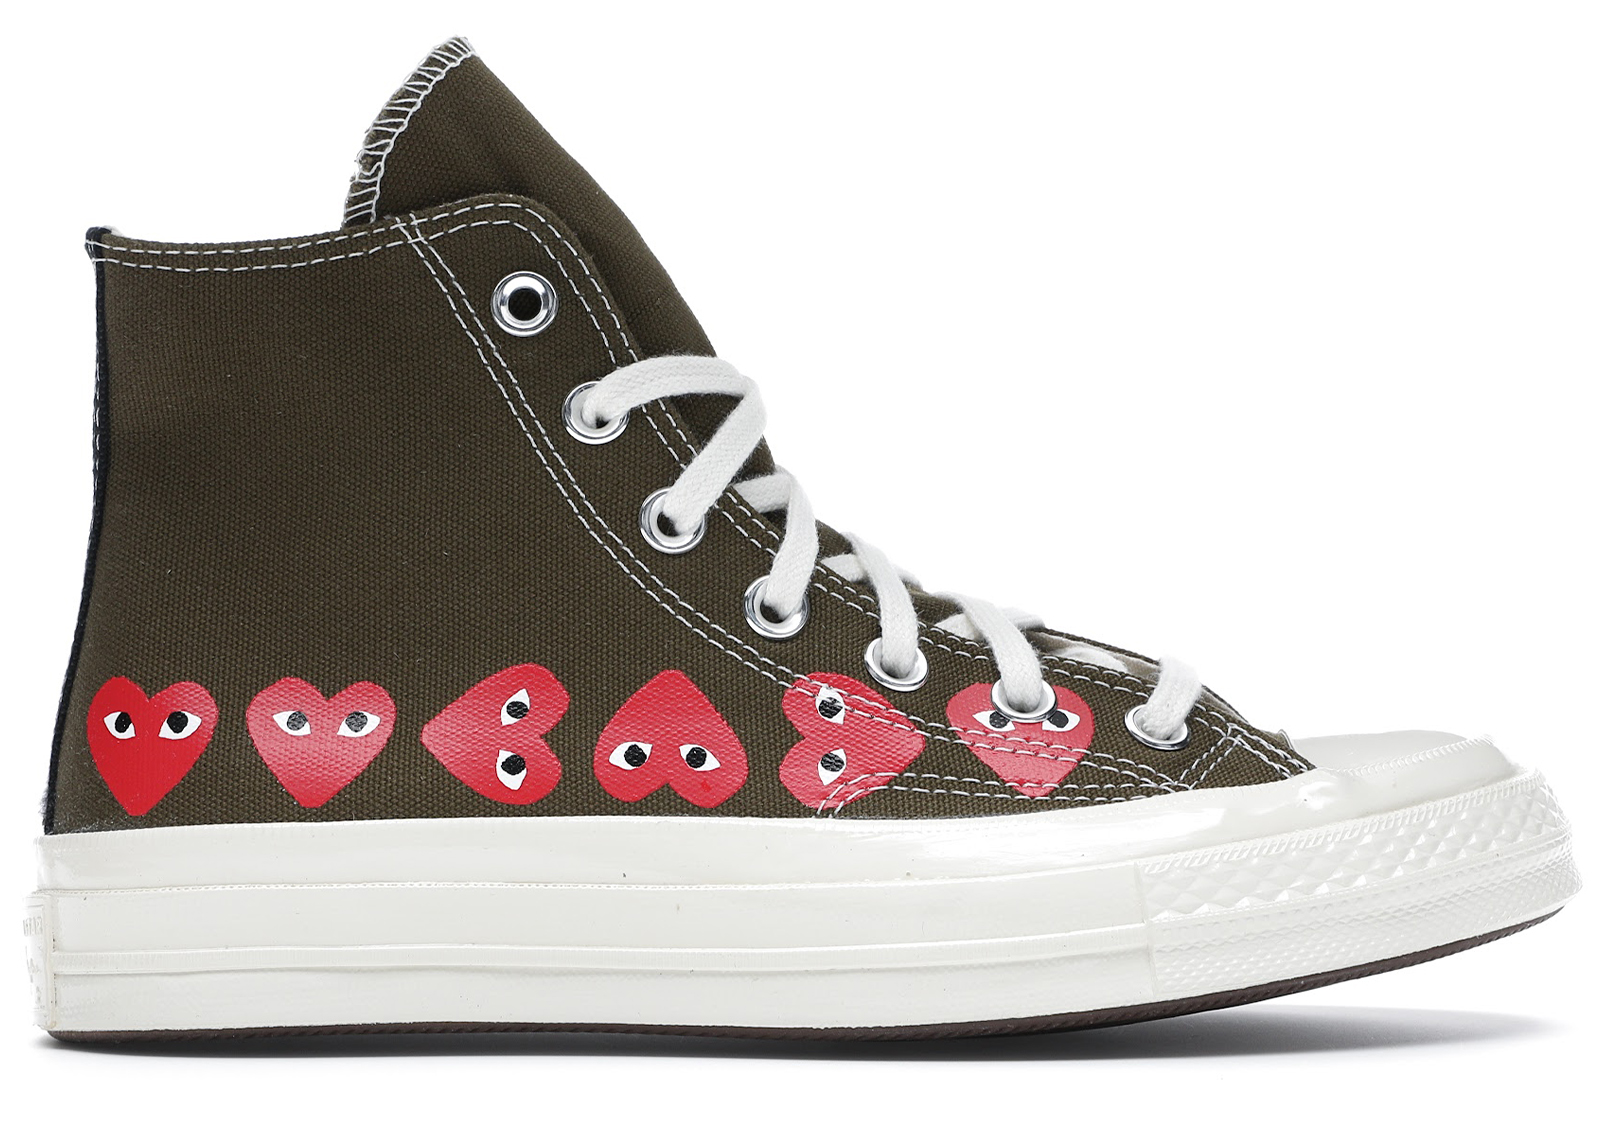 Converse Chuck Taylor All-Star 70s Hi Comme des Garcons Play Multi-Heart Green